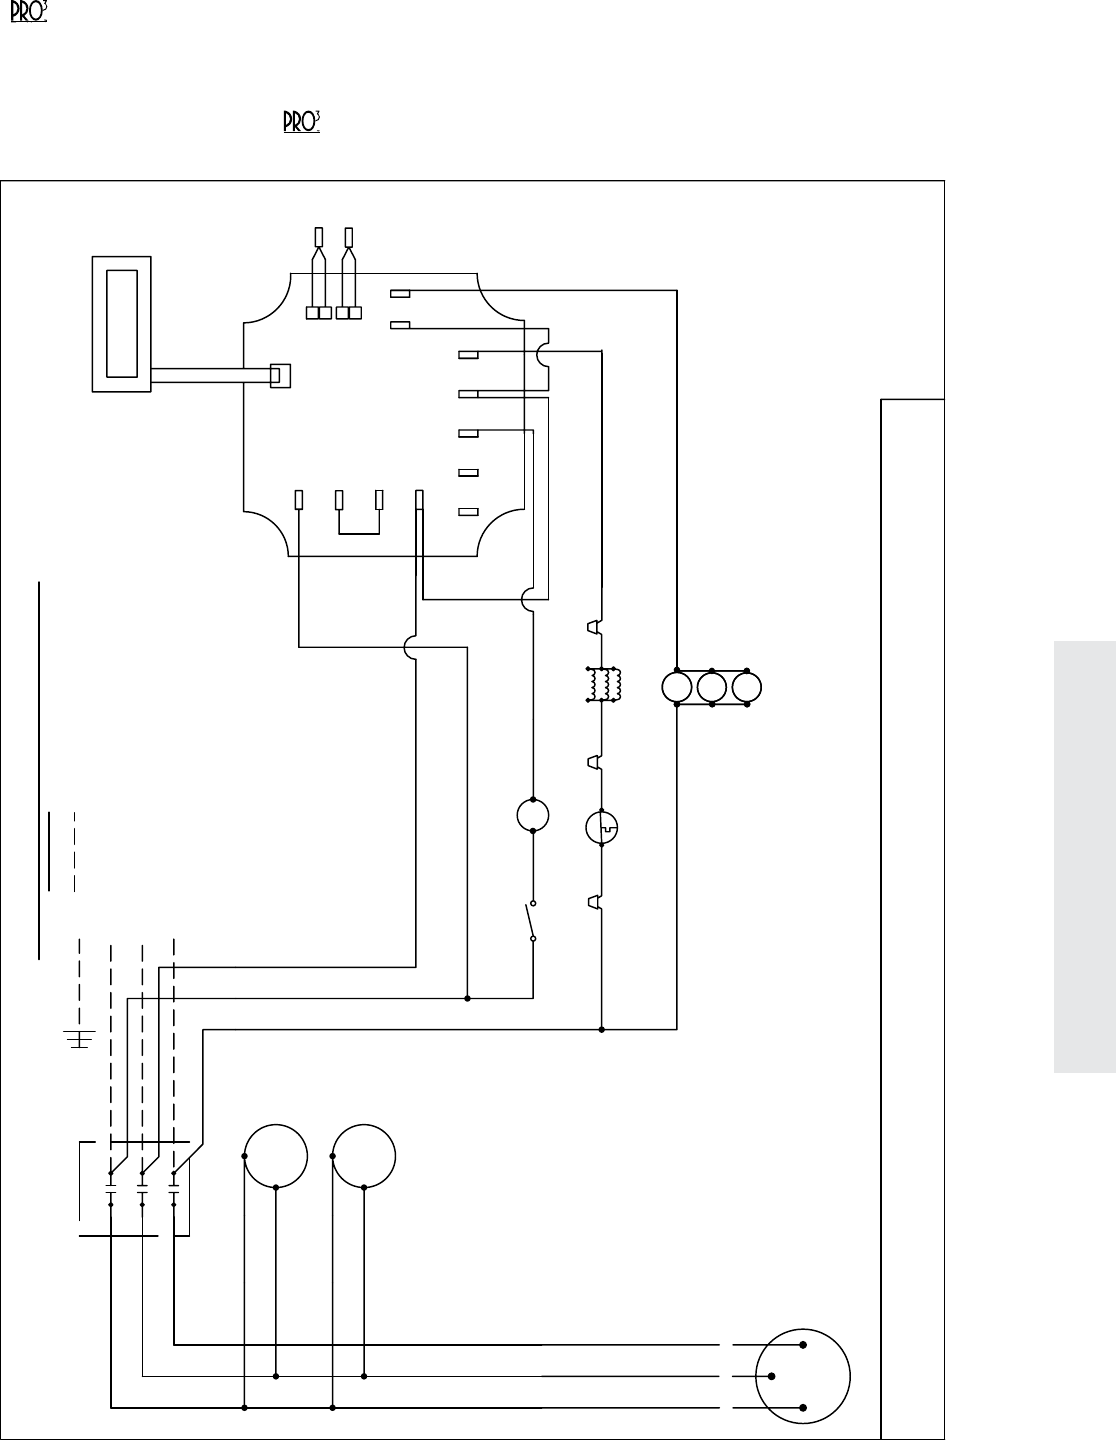 b8616a9a 7649 411a b648 d6245cba7e20 bg13 page 19 of heatcraft refrigeration products refrigerator h im 82b heatcraft wiring diagram at webbmarketing.co